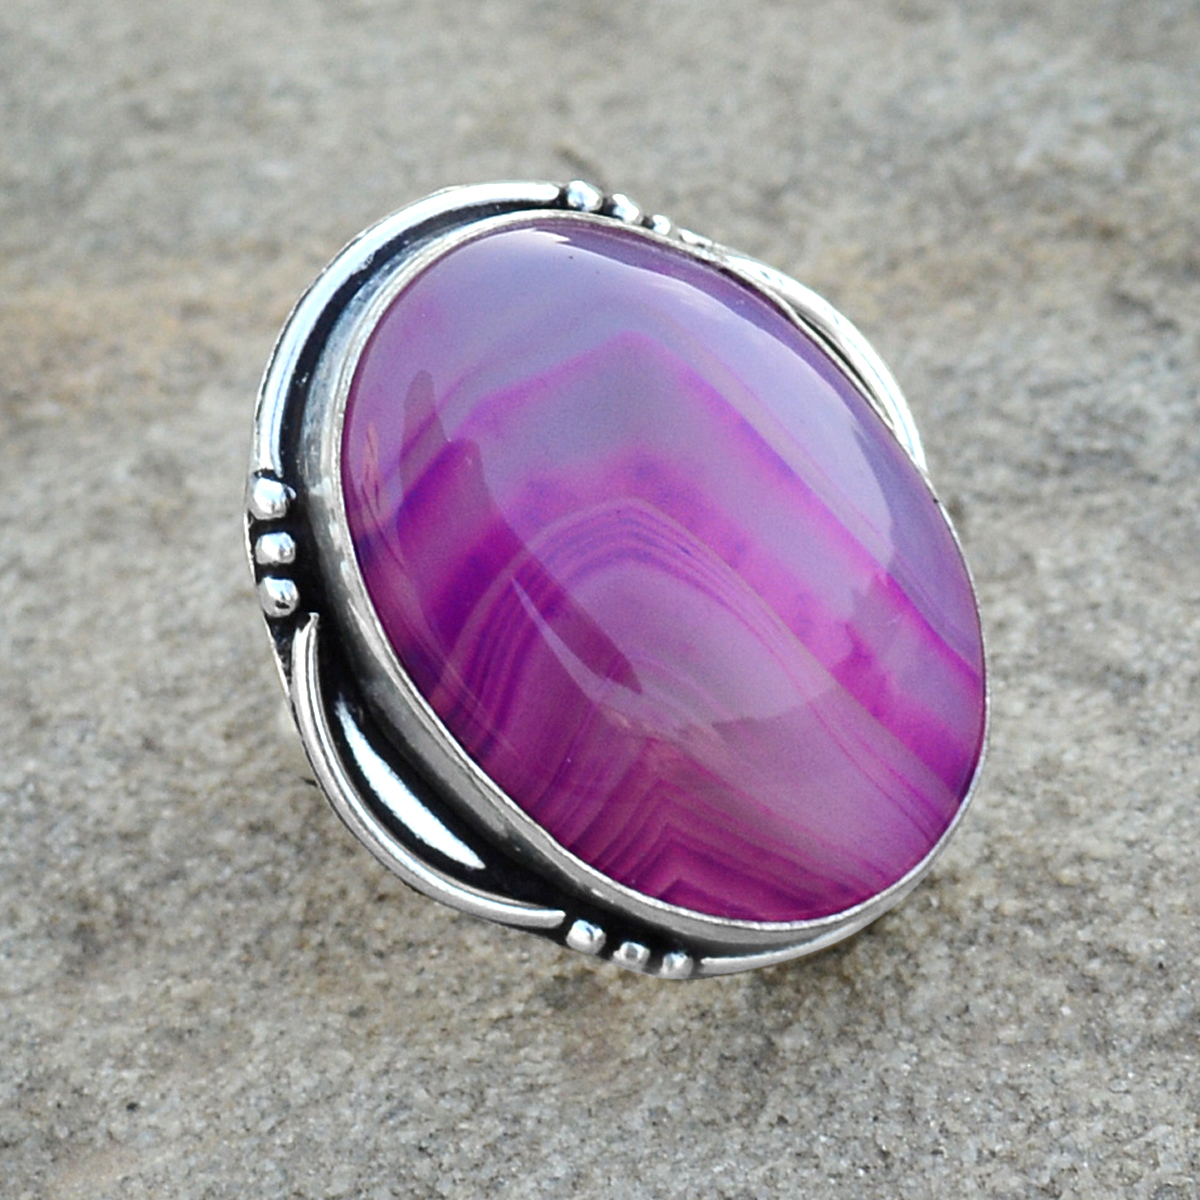 Striped Onyx Silver Ring PG-156609